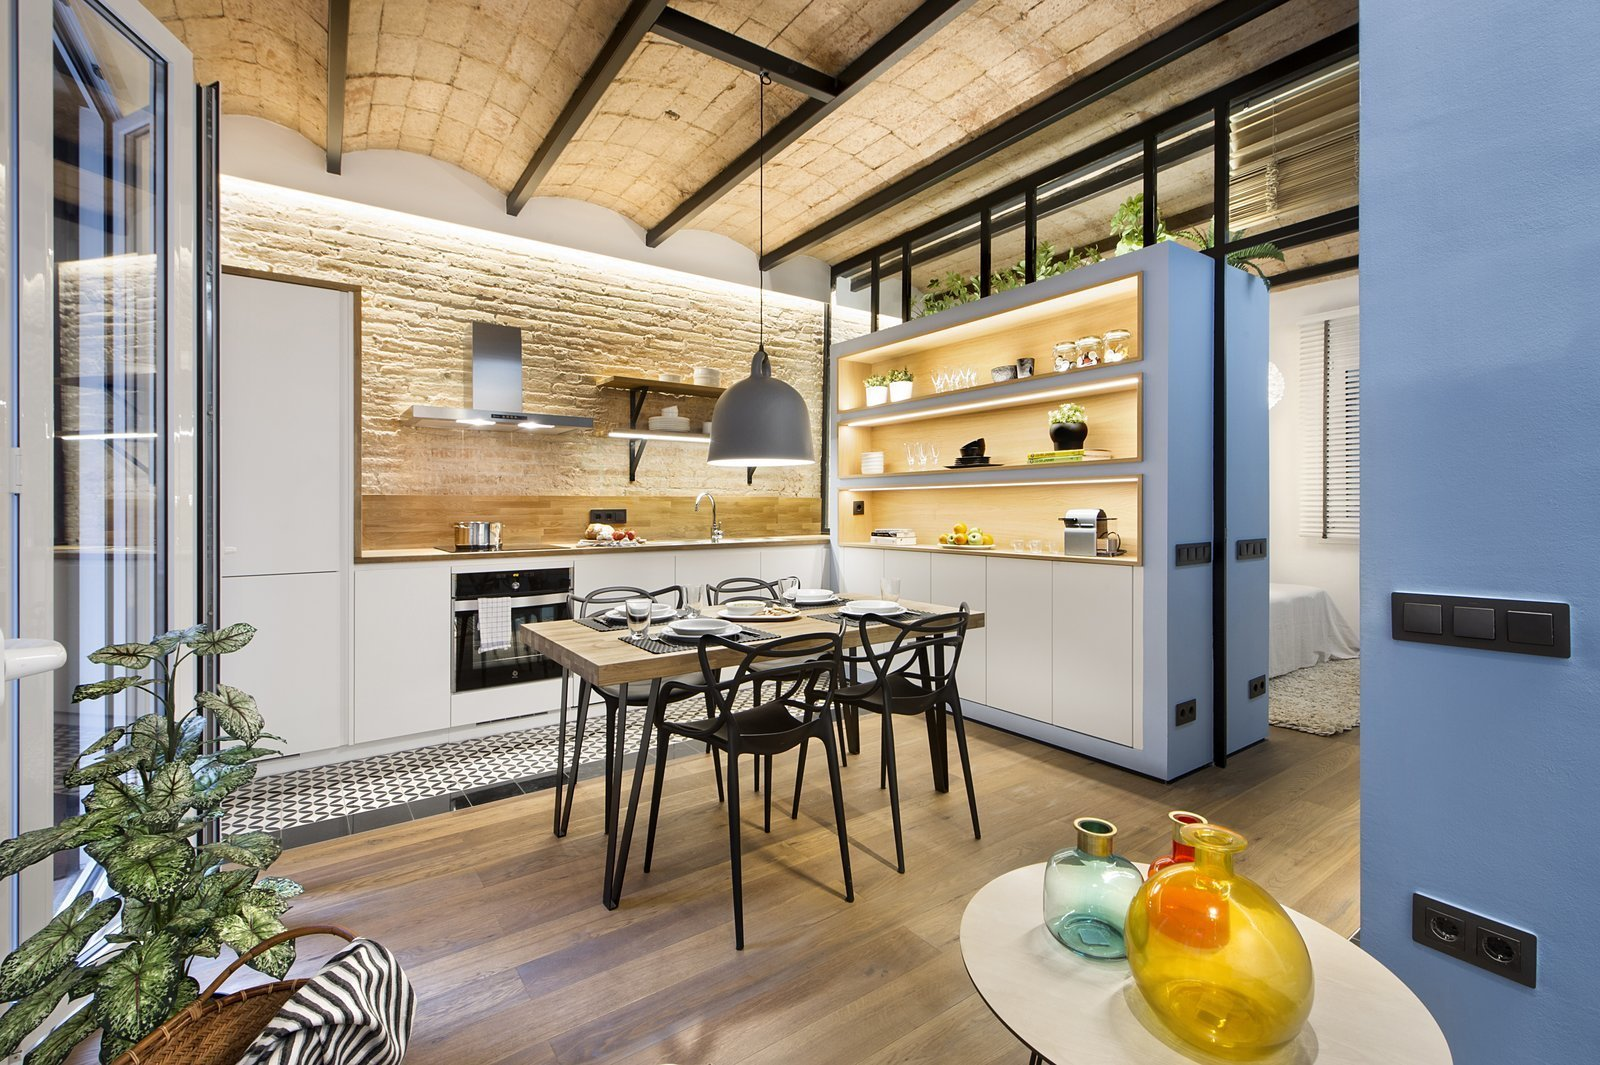 In this compact Barcelona apartment, an oak panel kitchen backsplash gives way to the original building's old brick wall, presenting a a wonderful play on natural textures. Tagged: Kitchen, Wood Backsplashe, Wall Oven, Refrigerator, Range Hood, Open Cabinet, Wood Counter, Medium Hardwood Floor, Pendant Lighting, and Cooktops.  Photo 10 of 12 in 12 Brilliant Kitchen Backsplash Ideas